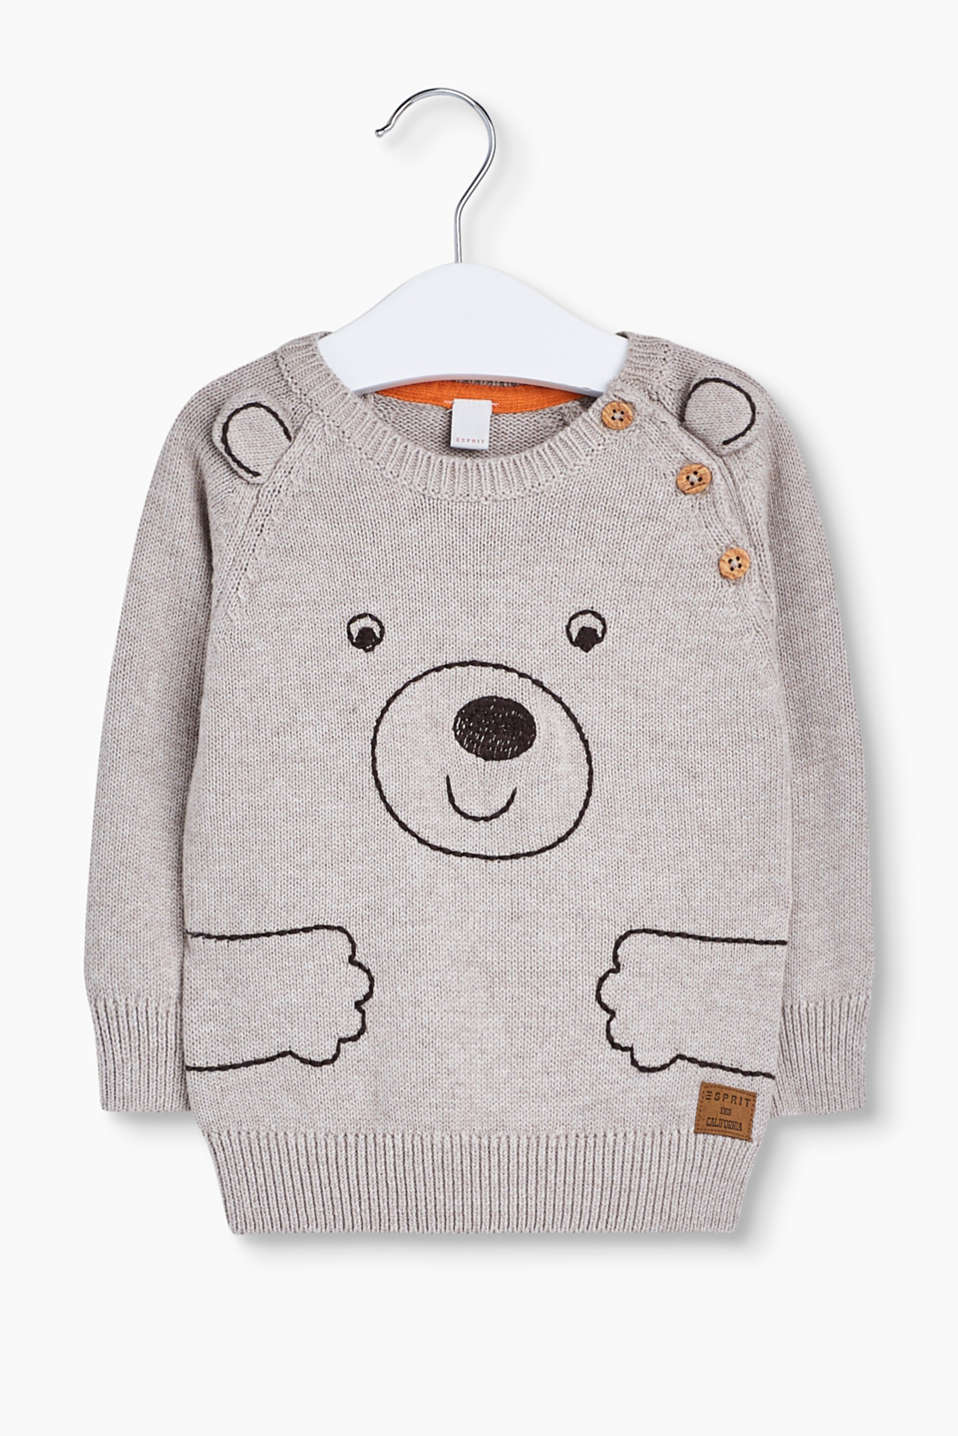 This cotton jumper with a sweet bear embroidery and appliquéd little ears is a real favourite.